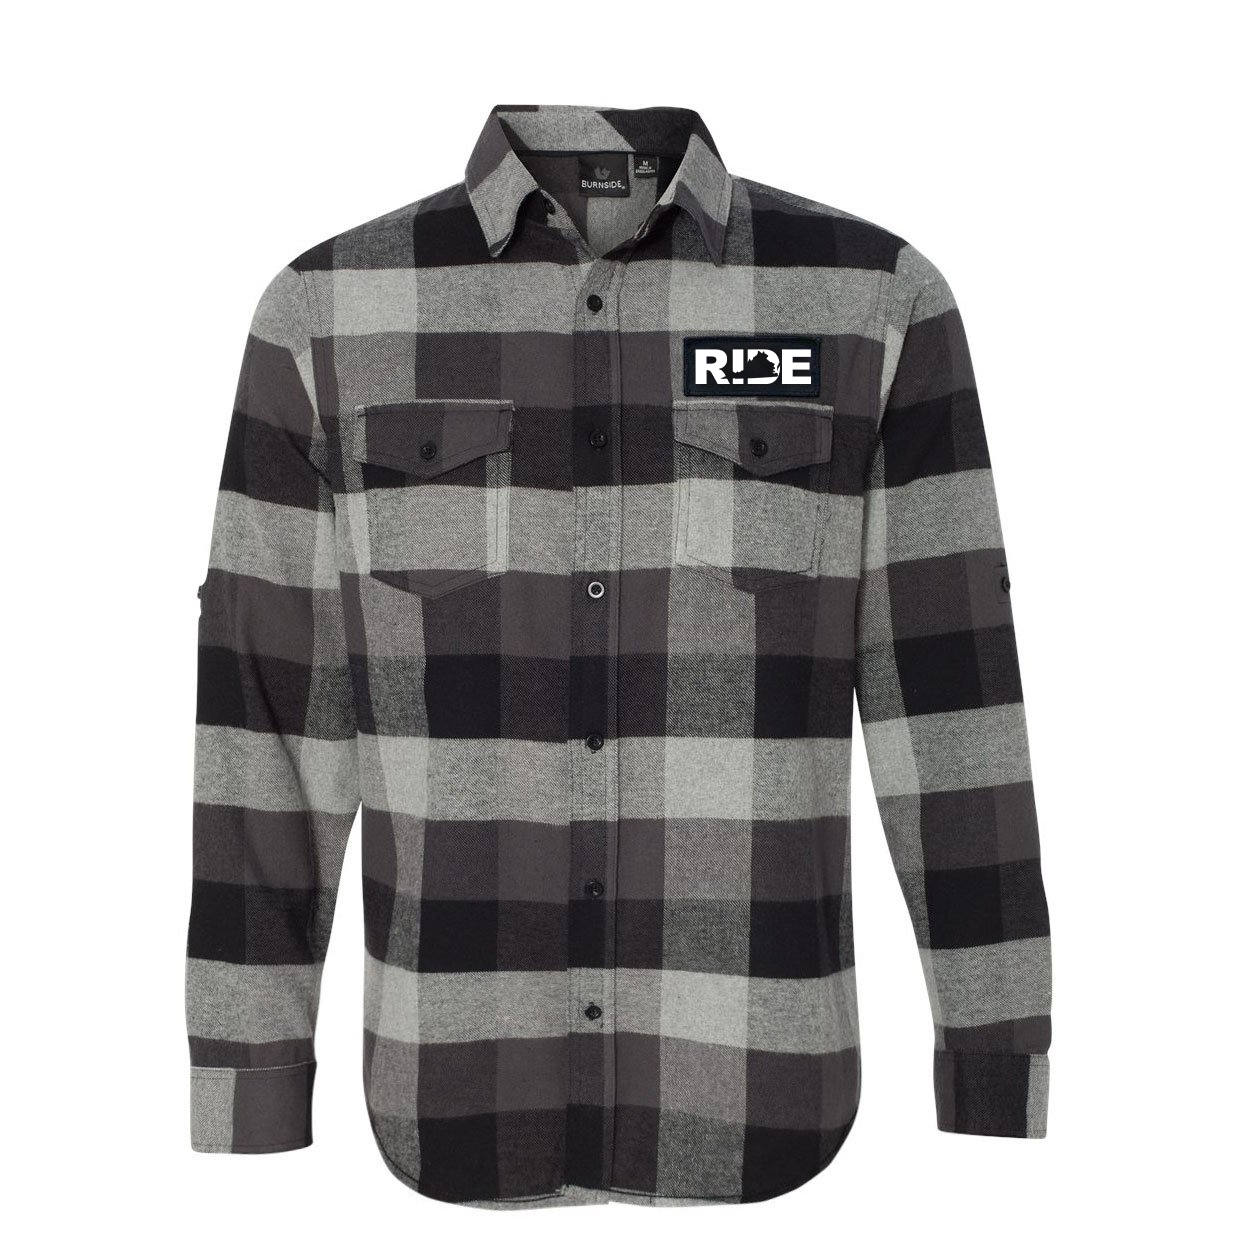 Ride Virginia Classic Unisex Long Sleeve Woven Patch Flannel Shirt Black/Gray (White Logo)